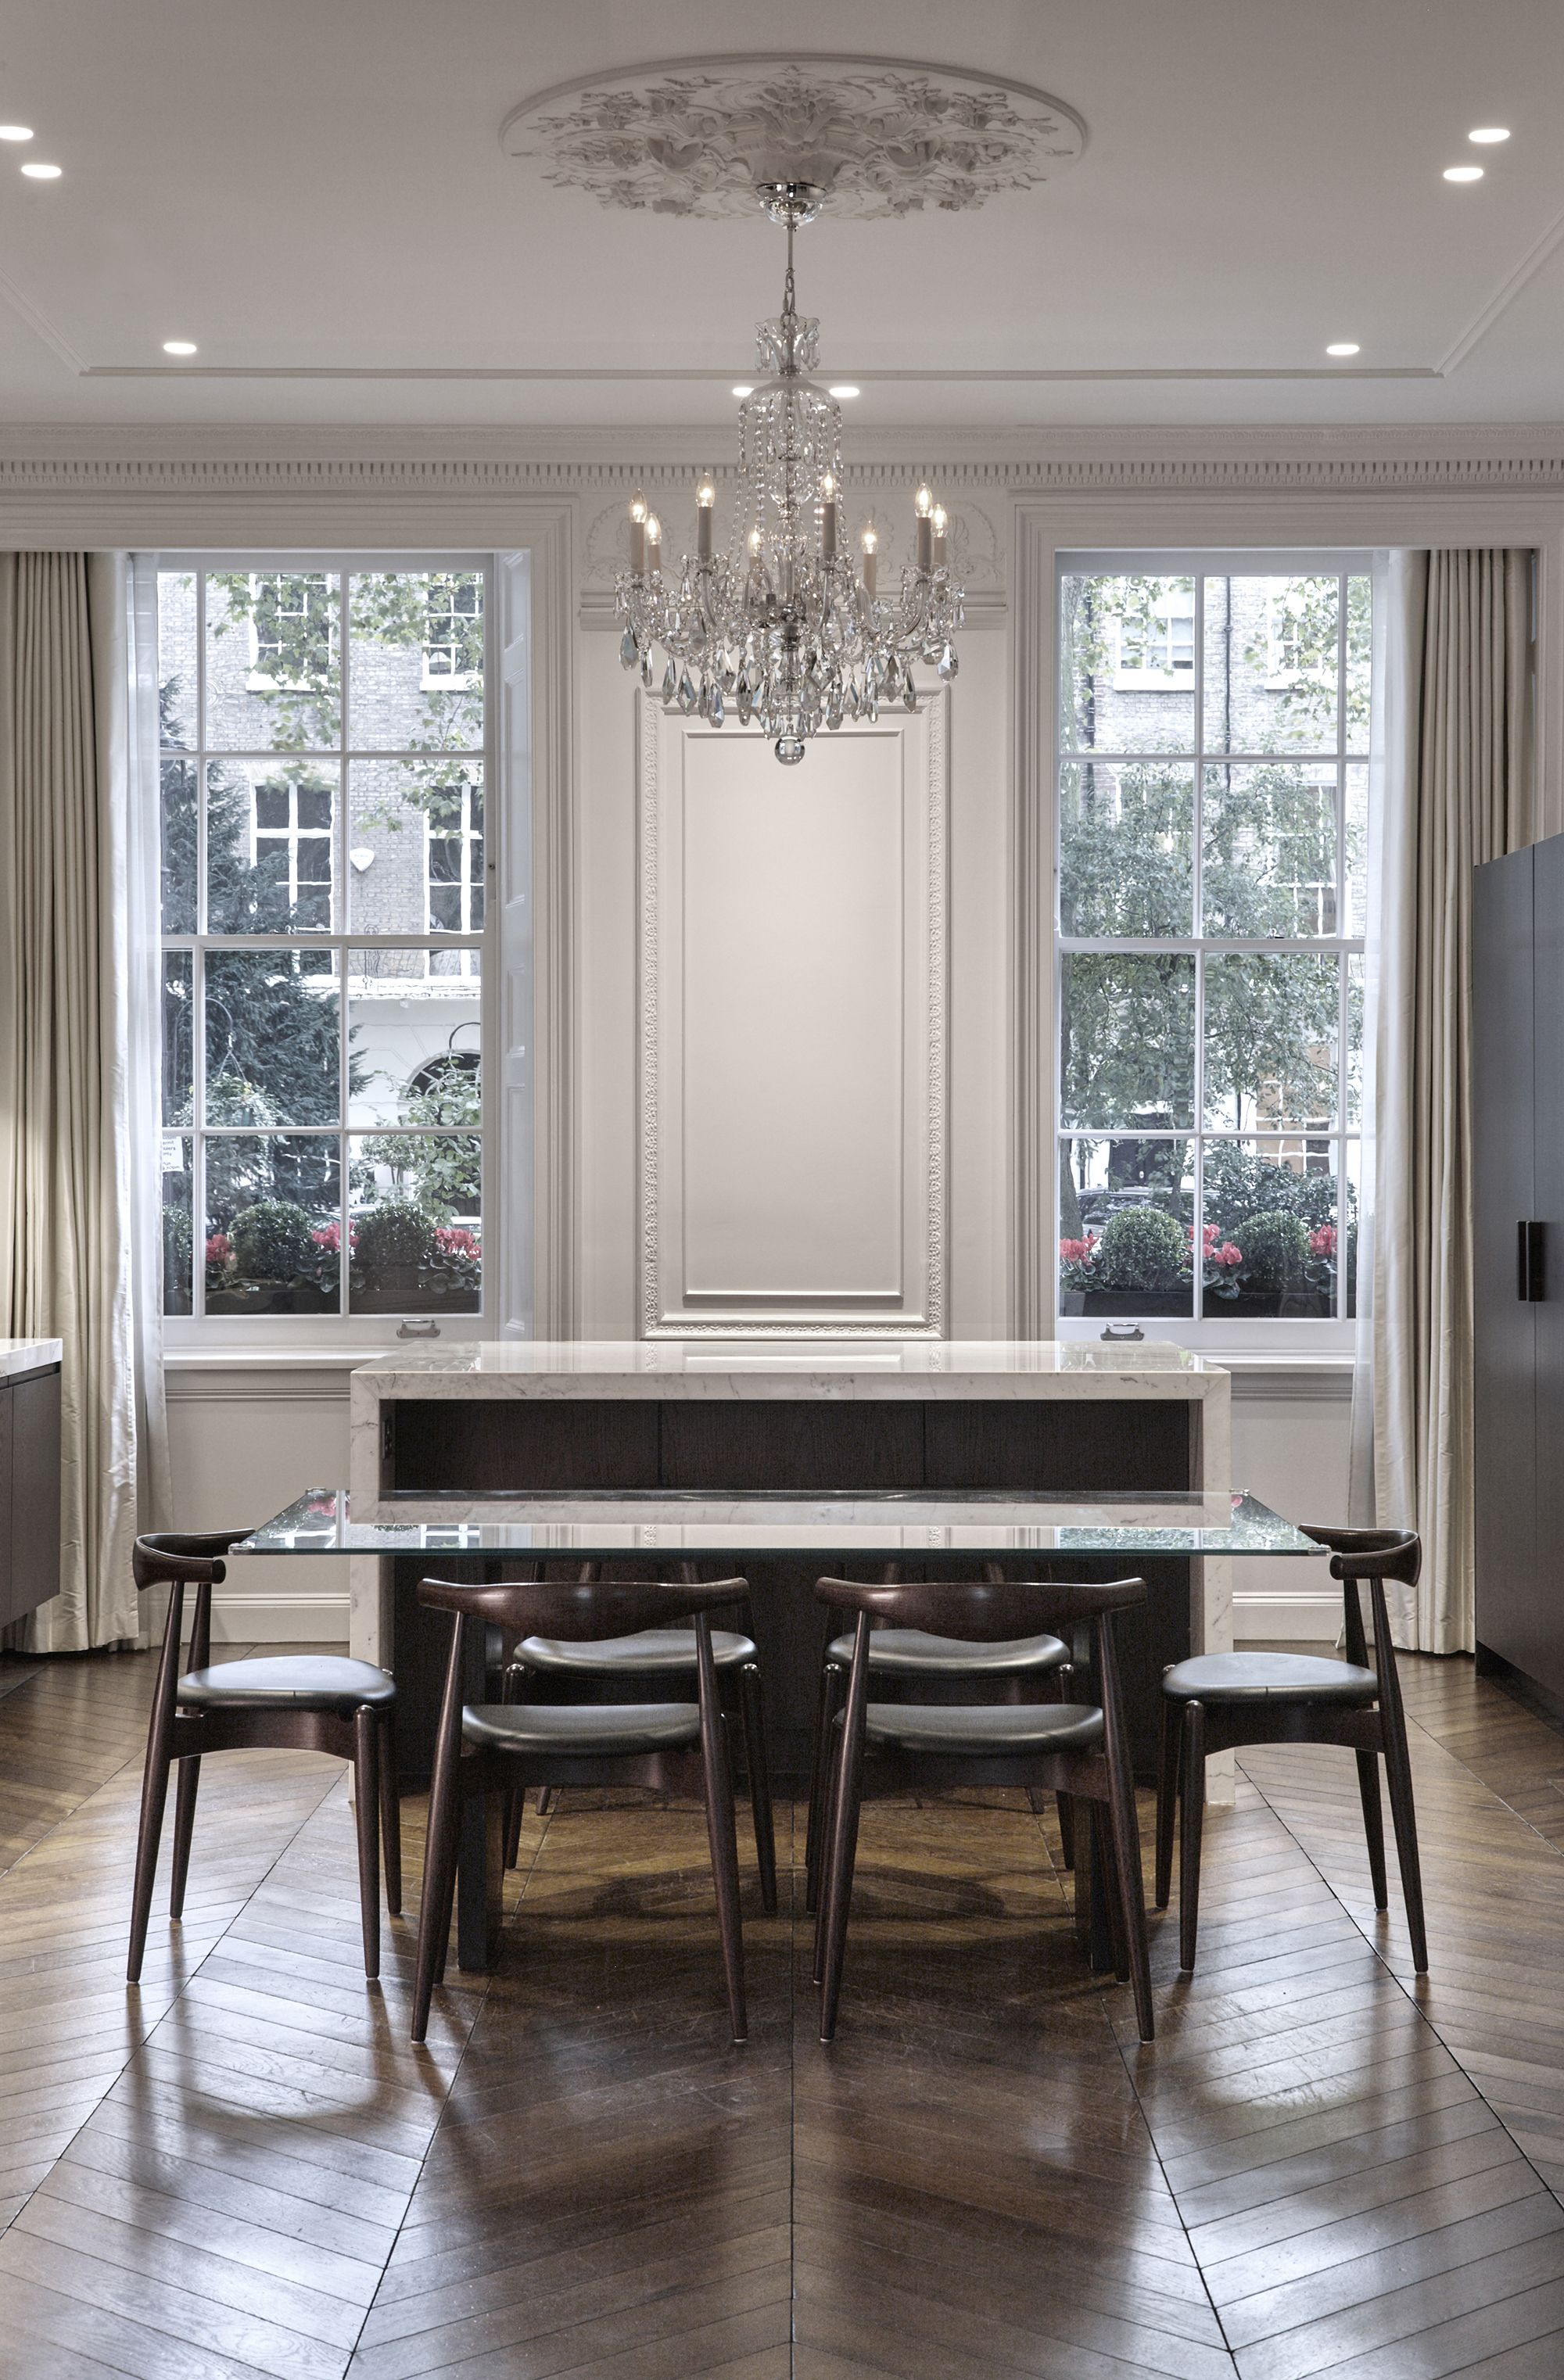 D Raw - Montagu Square | Square kitchen, Interior design ...